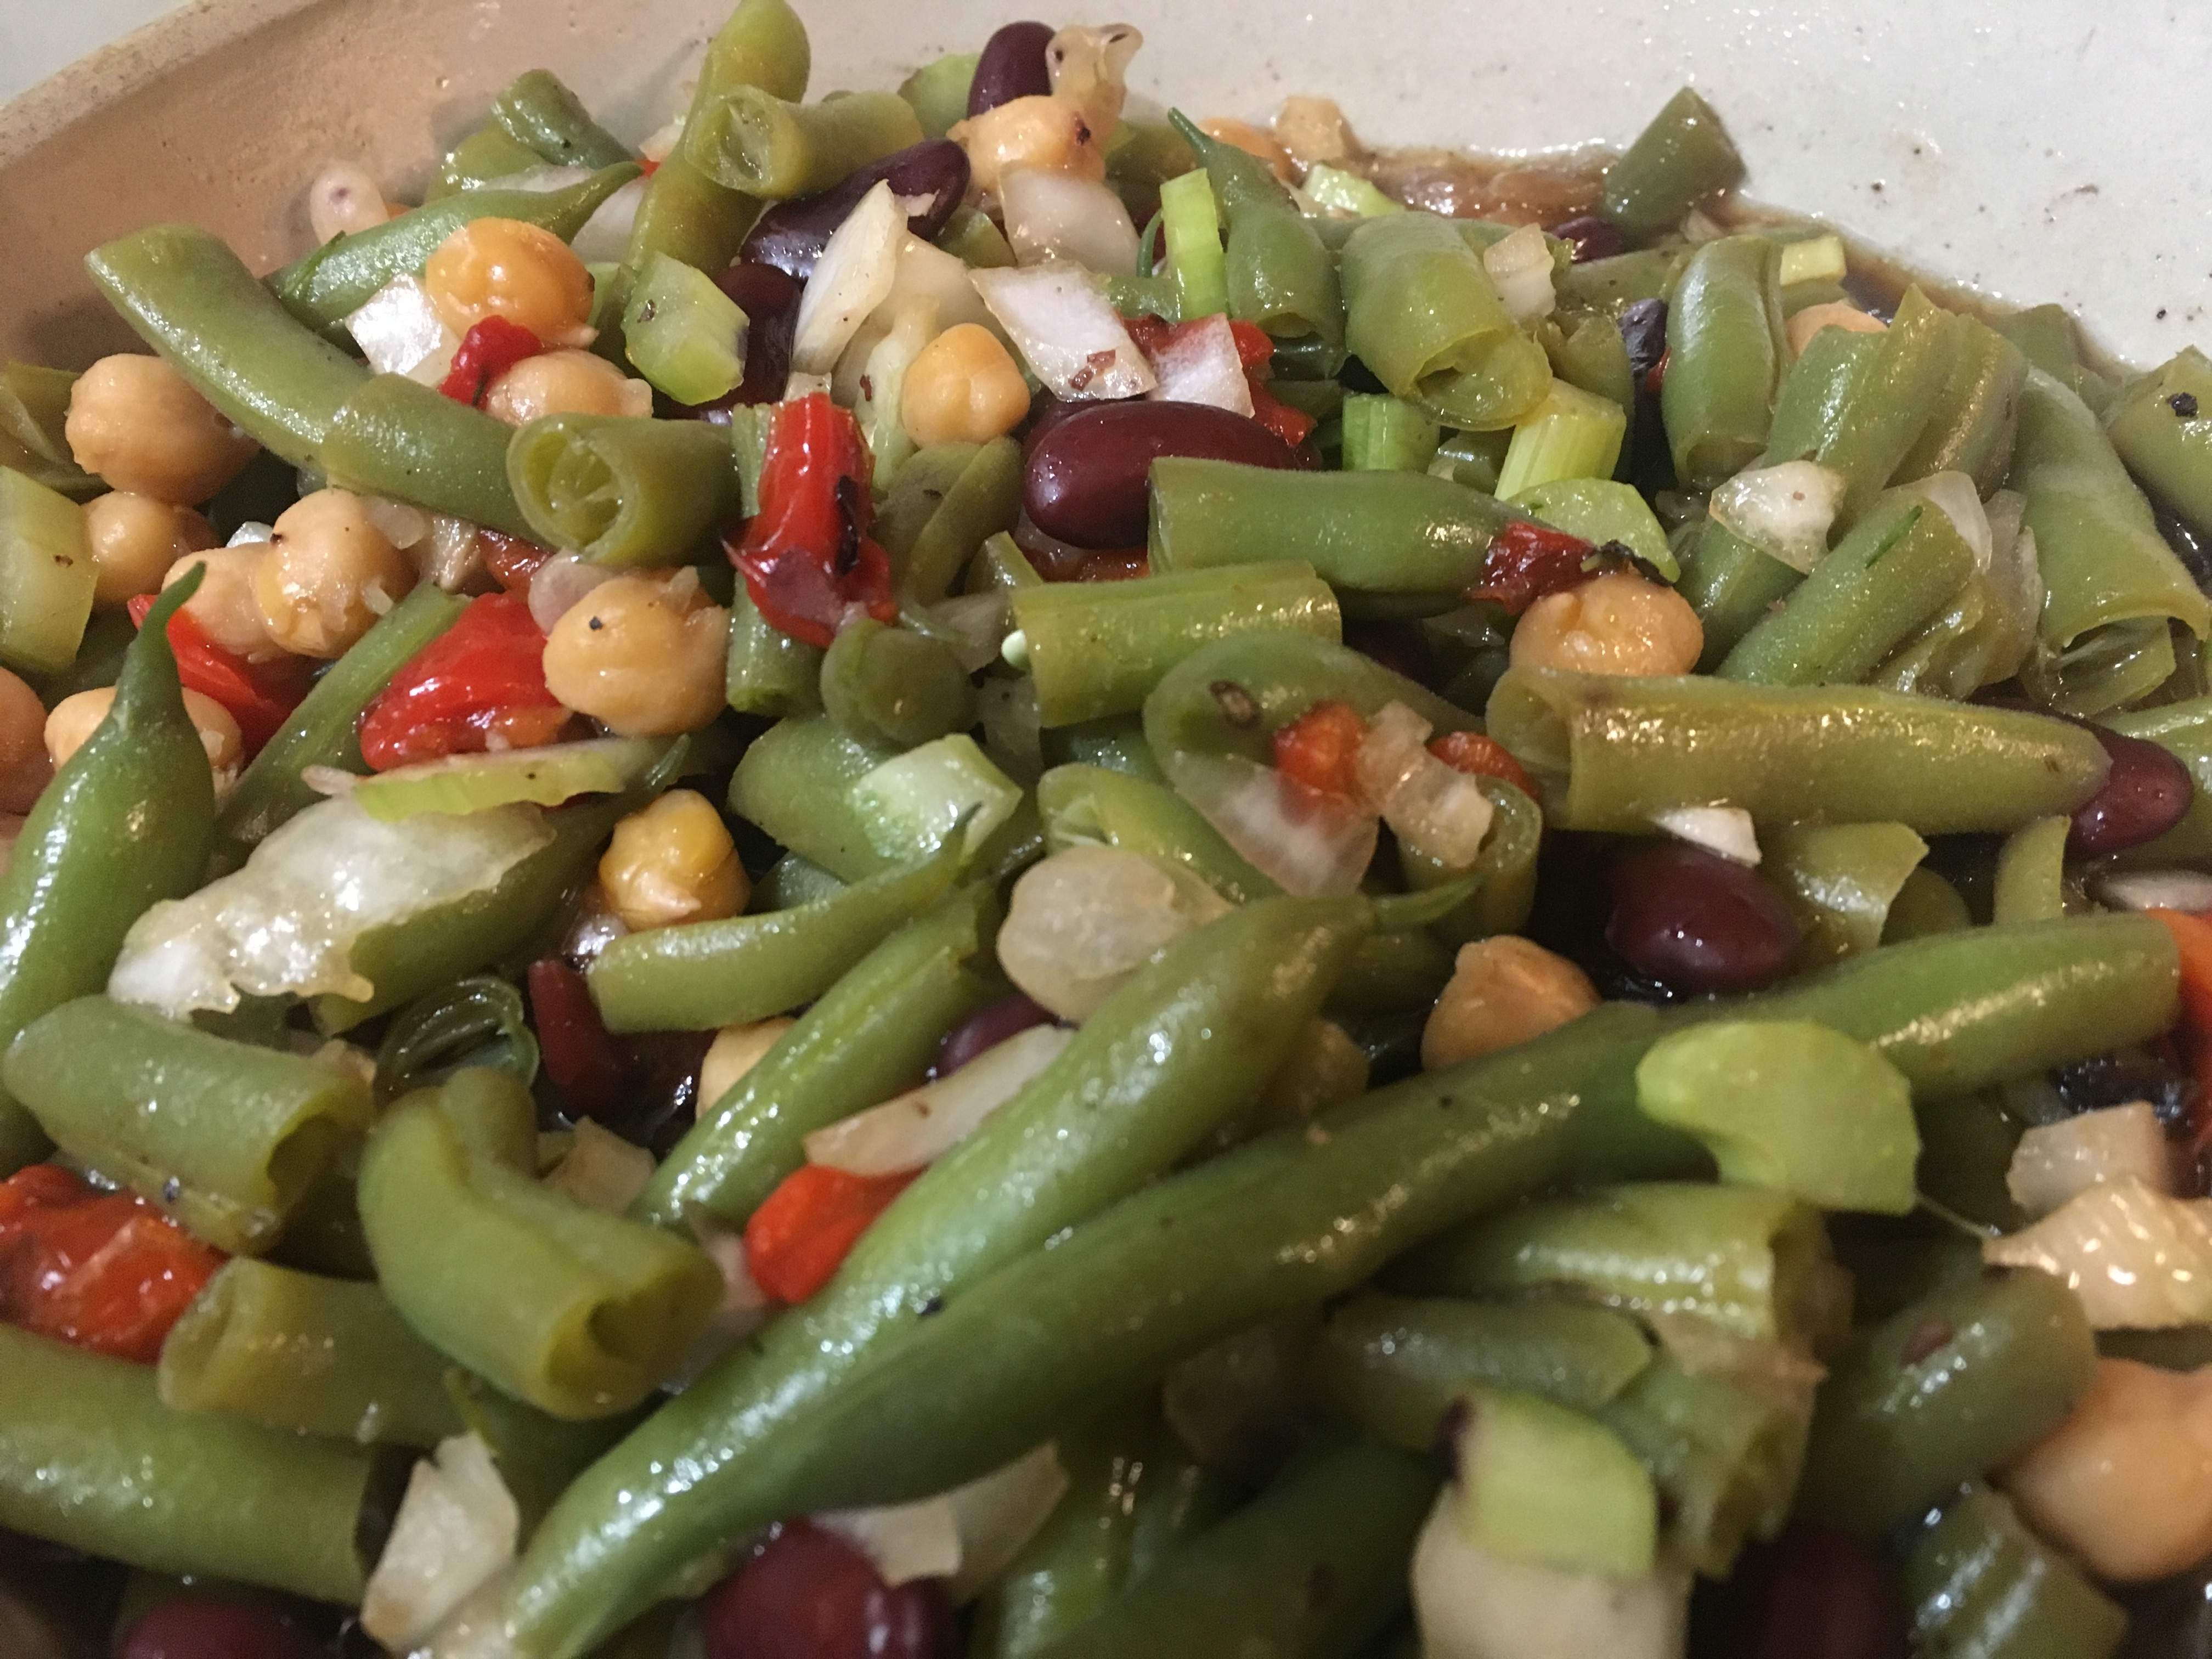 Grandma's Calico Green Bean Salad